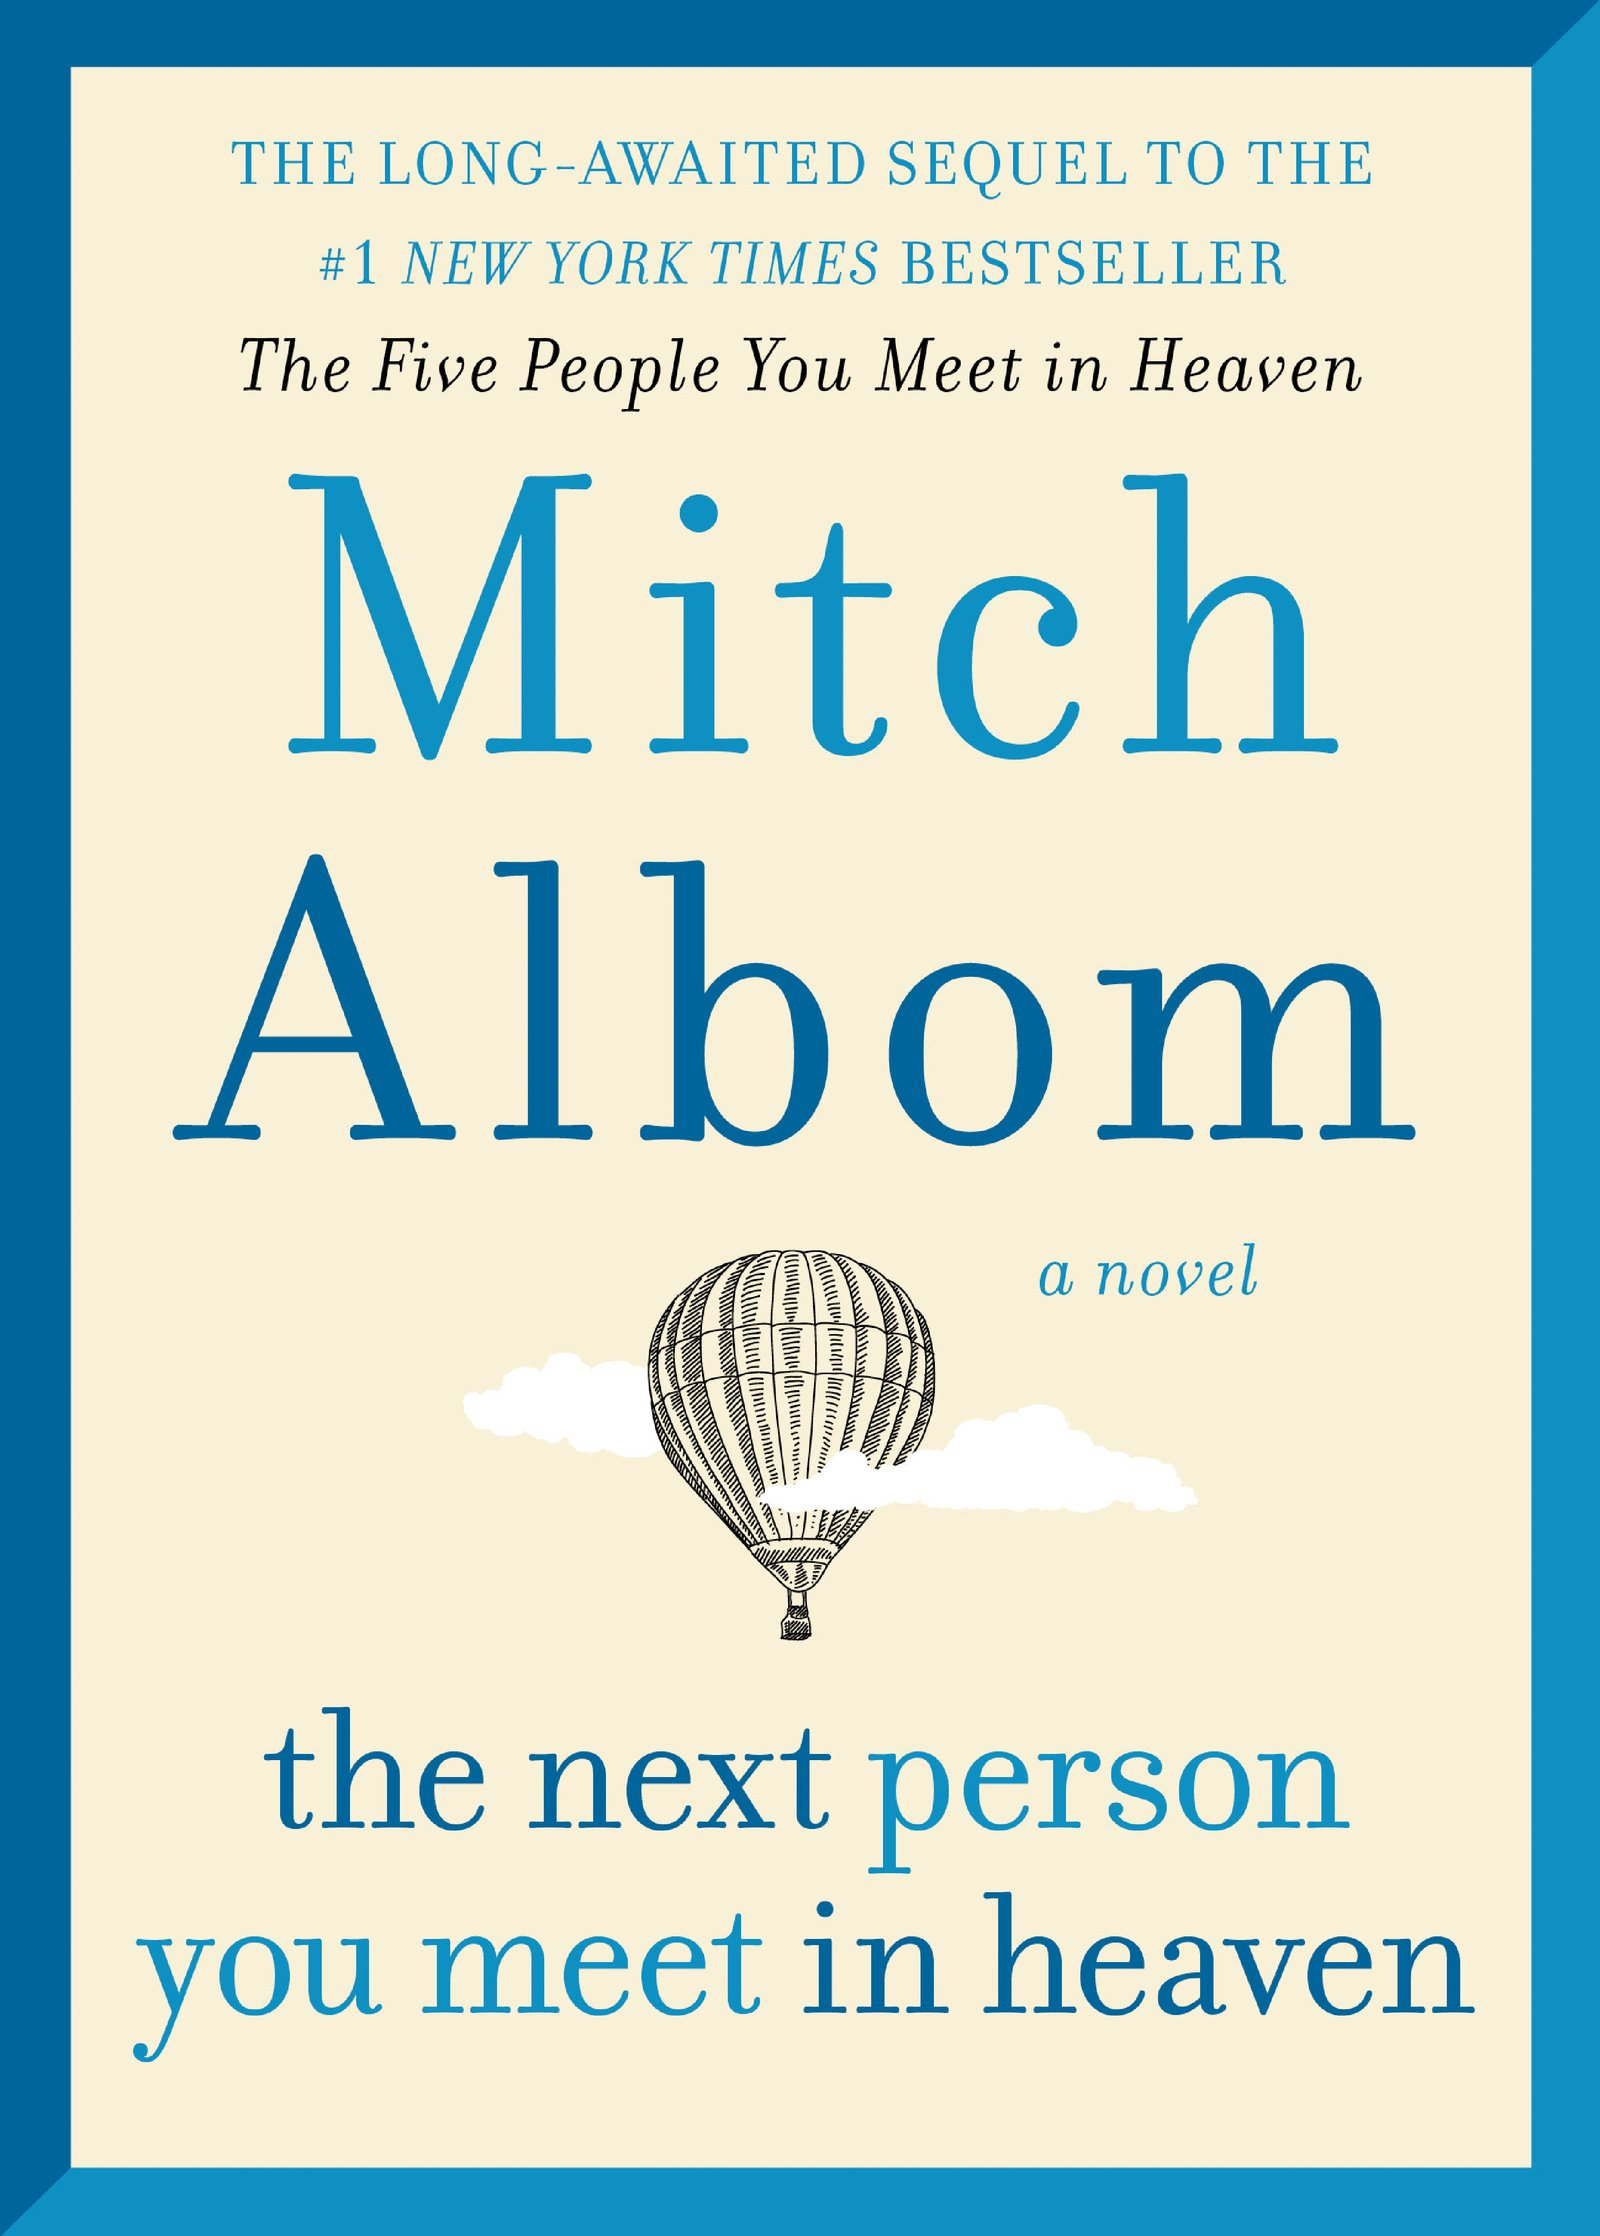 The Next Person You Meet in Heaven: The Sequel to The Five People ...